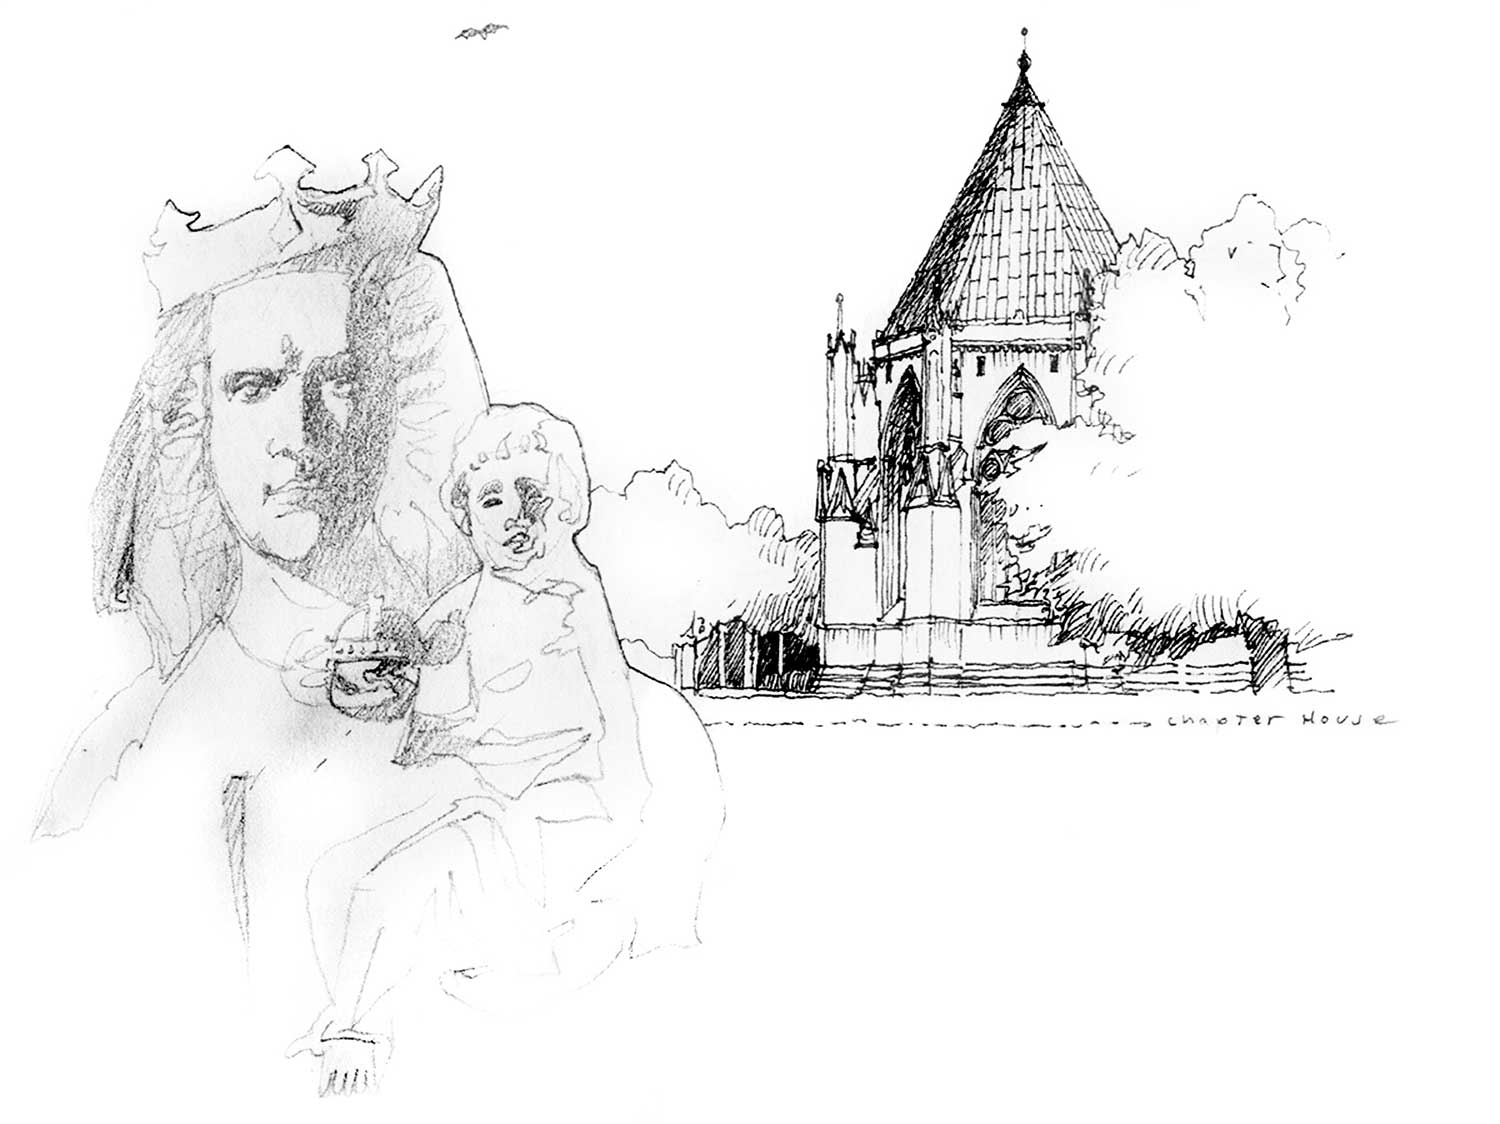 York Minster Chapter House and sculpture, York, England.  Felt-tip pen and pencil.